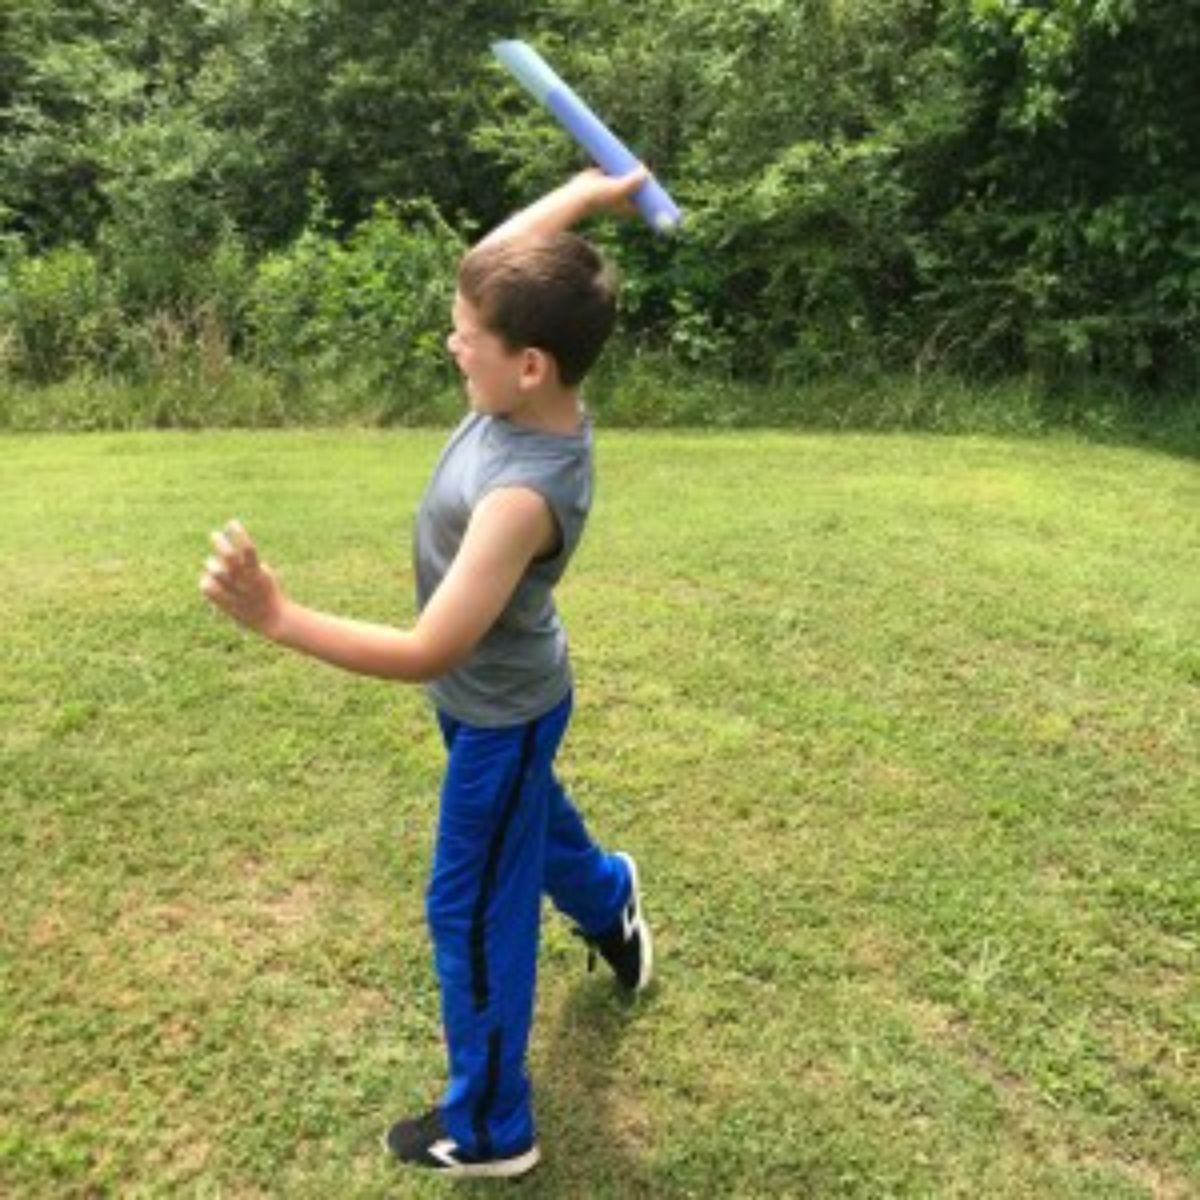 a boy holds a paper javelin in the air as if to throw it